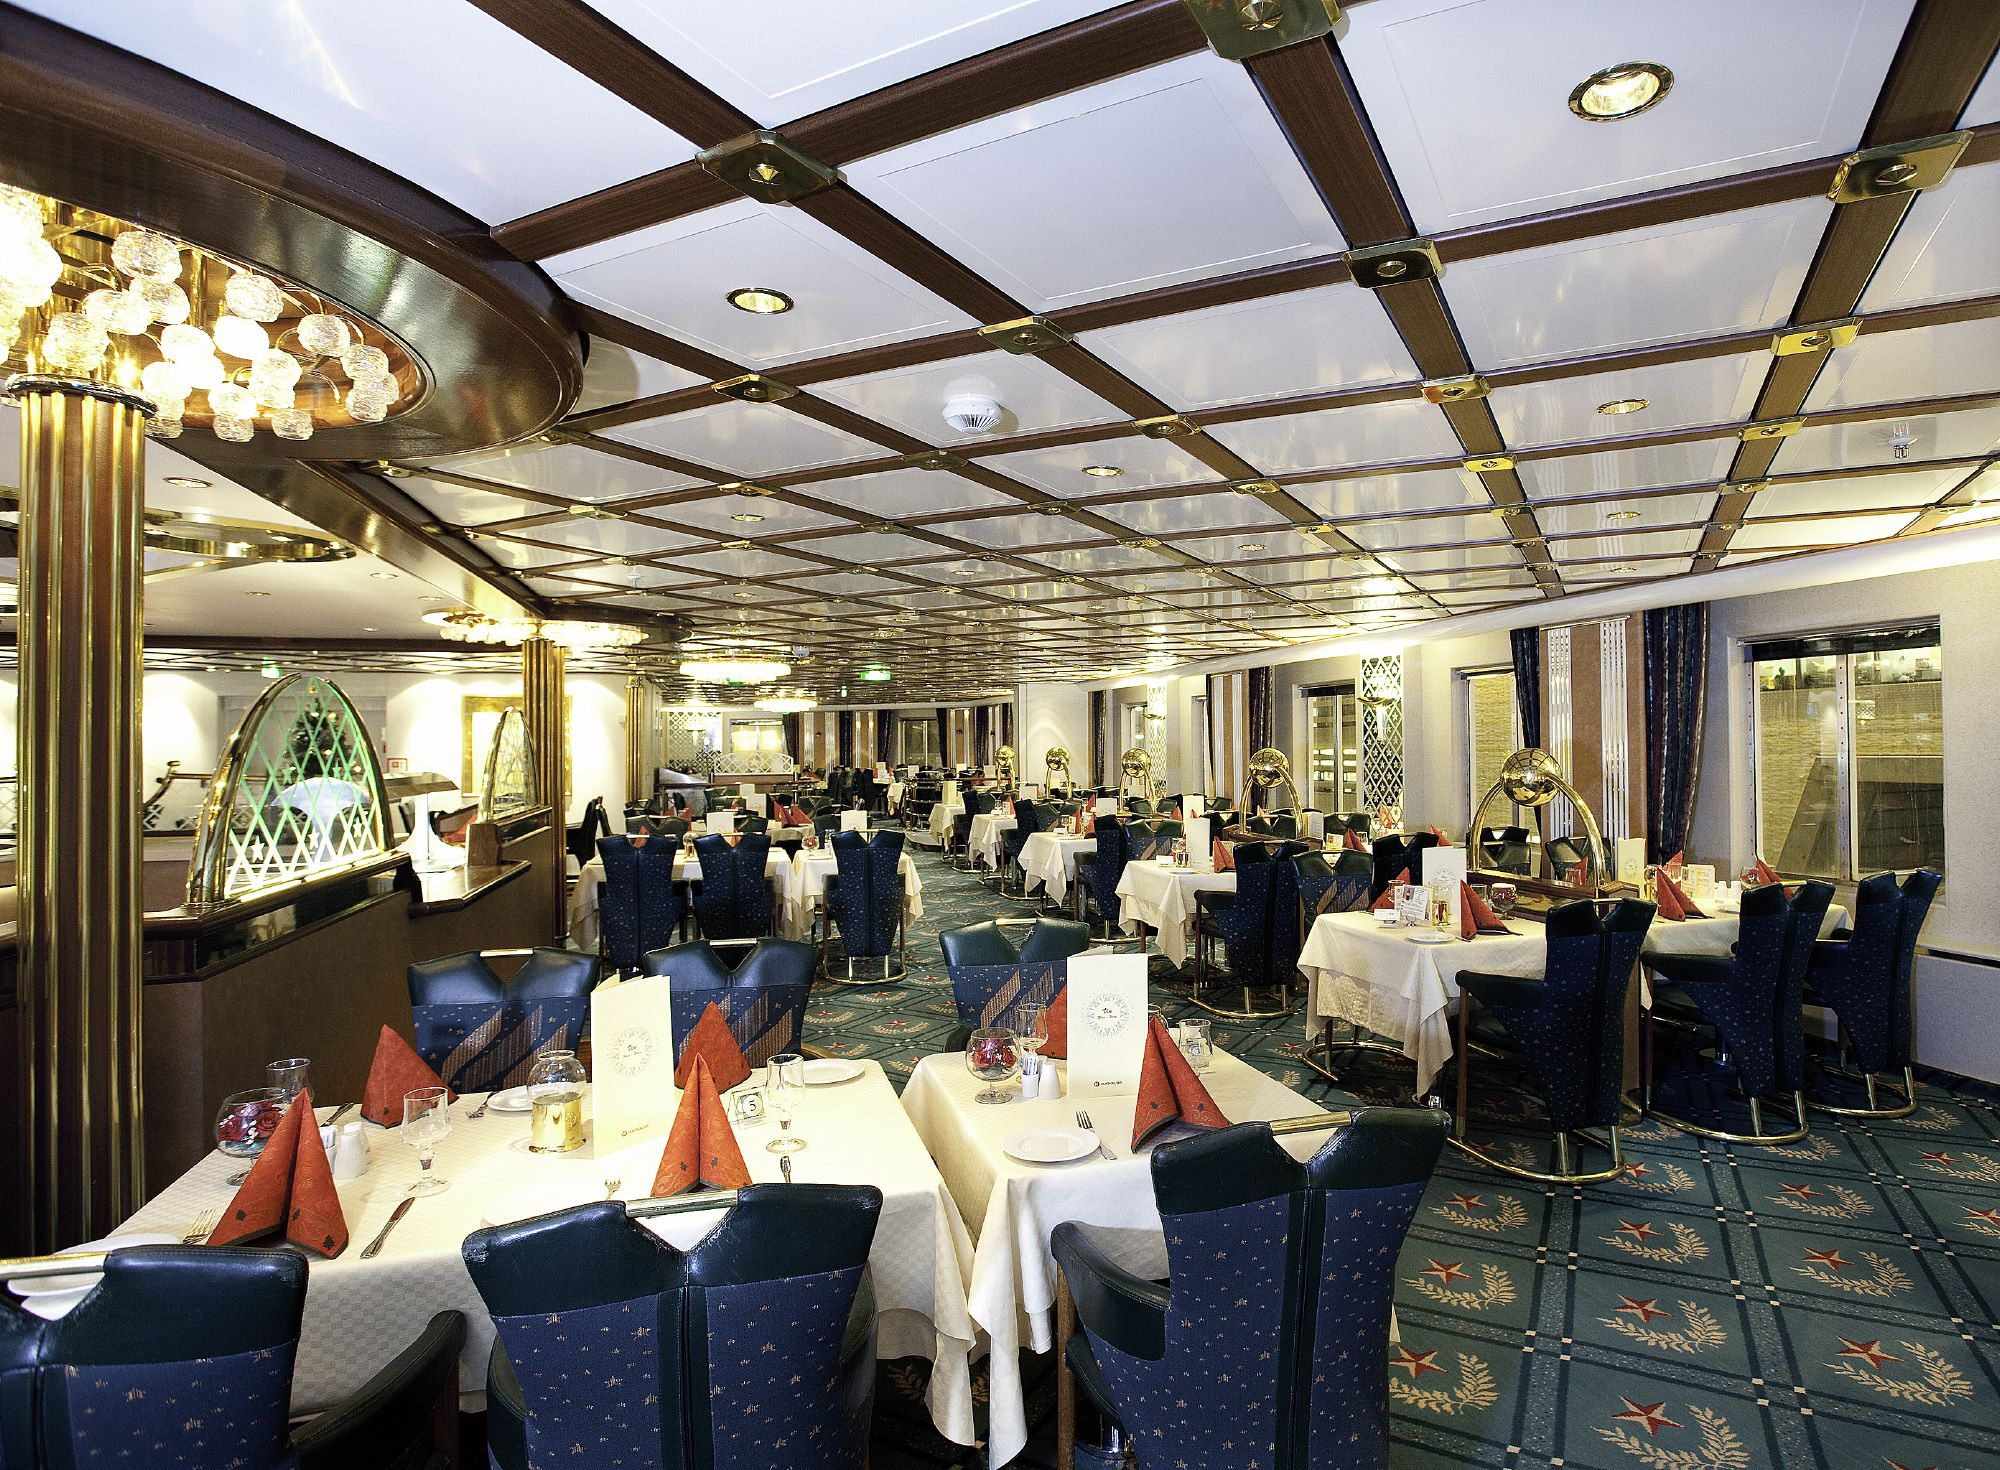 Ms Nordlys Cruise Direction Tailor Made Cruise Holidays